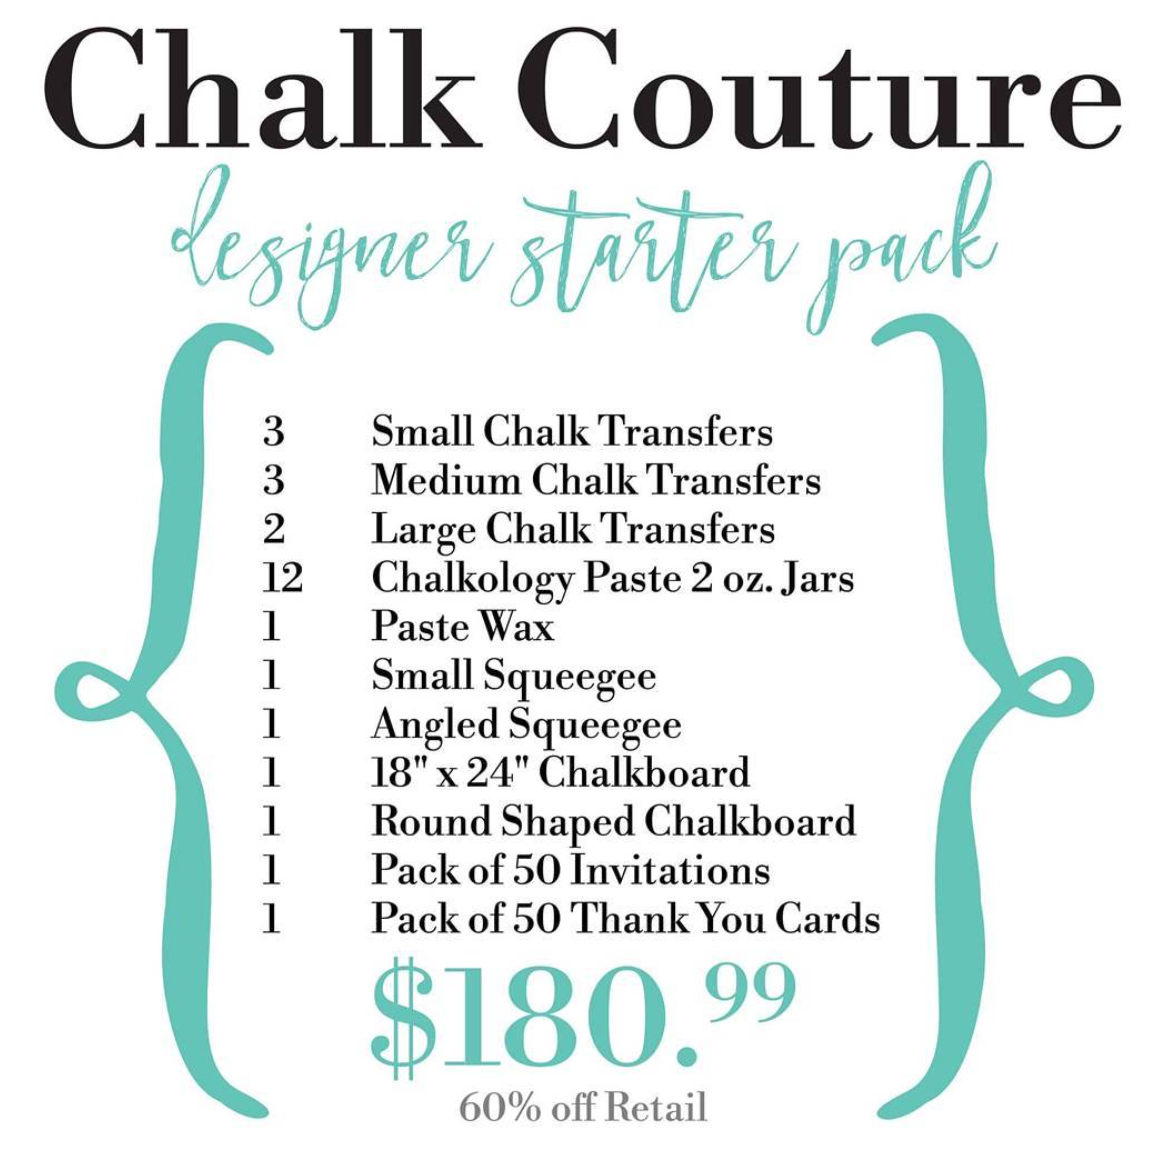 CC Kit Contents JOIN Our Team With This New Direct Sales Company In  Prelaunch. Chalk